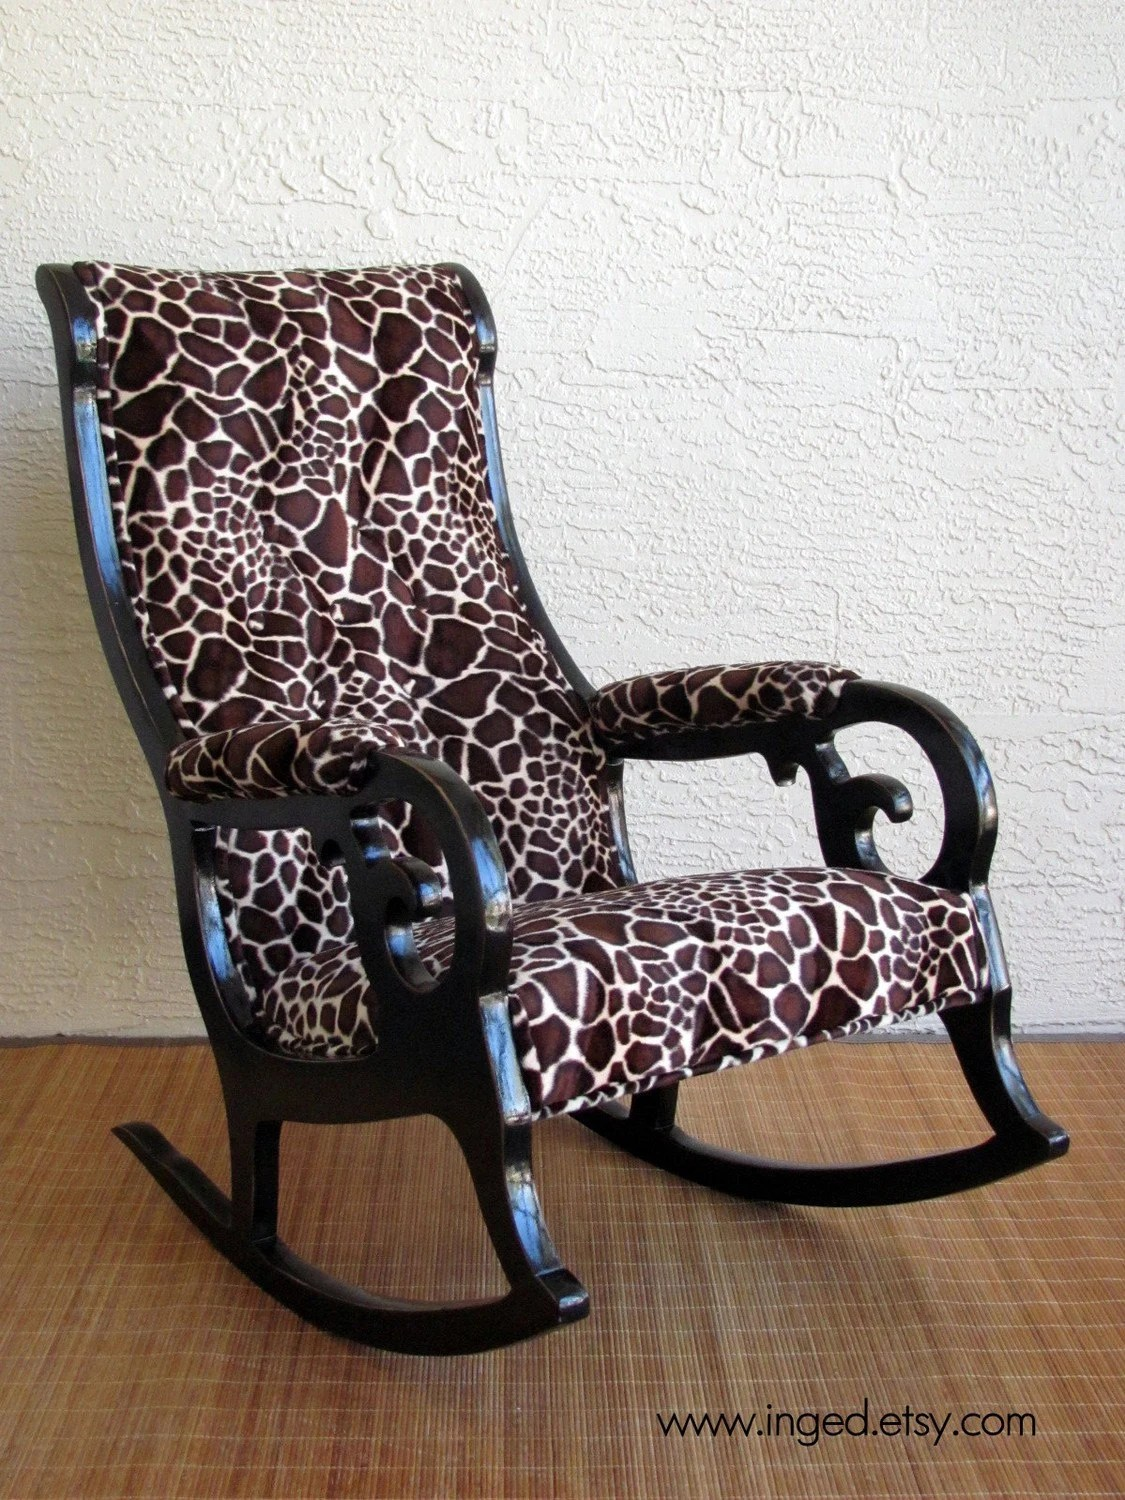 Giraffe Rocking Chair Vintage Victorian Rocking Chair In Giraffe Print Free